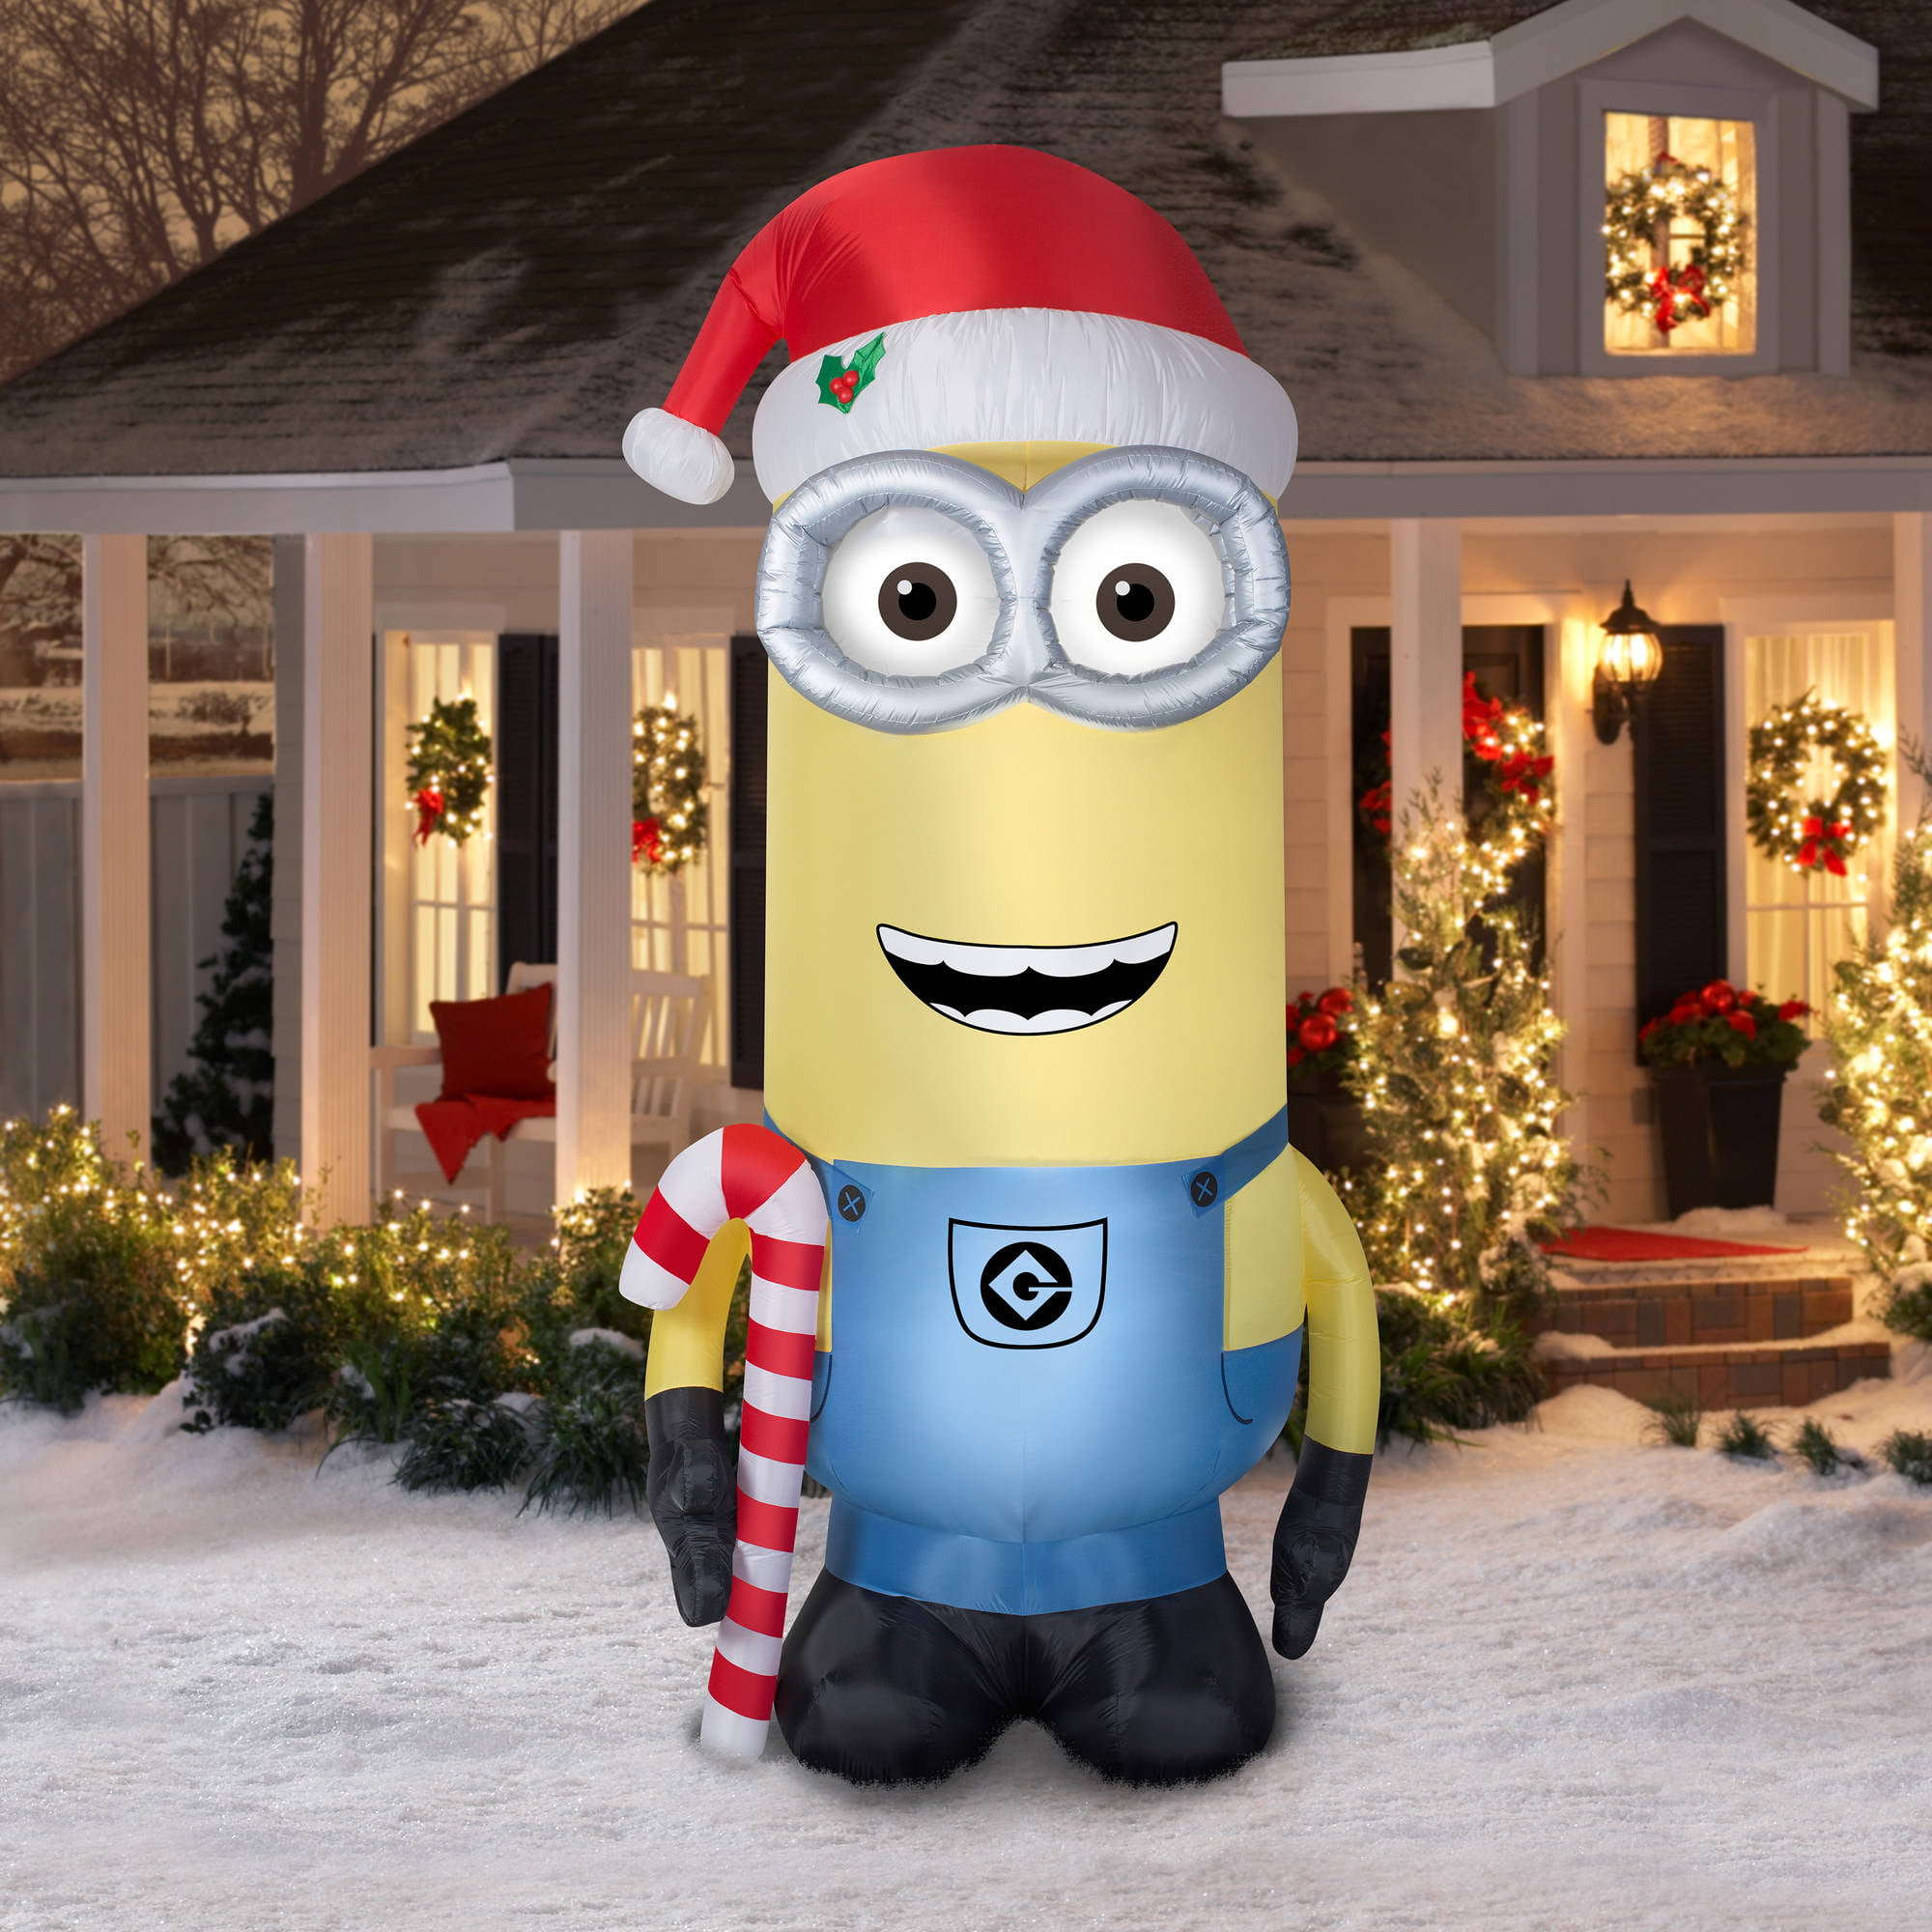 airblown inflatables 11 ft minion kevin with candy cane and santa hat walmartcom - Cheap Inflatable Christmas Decorations